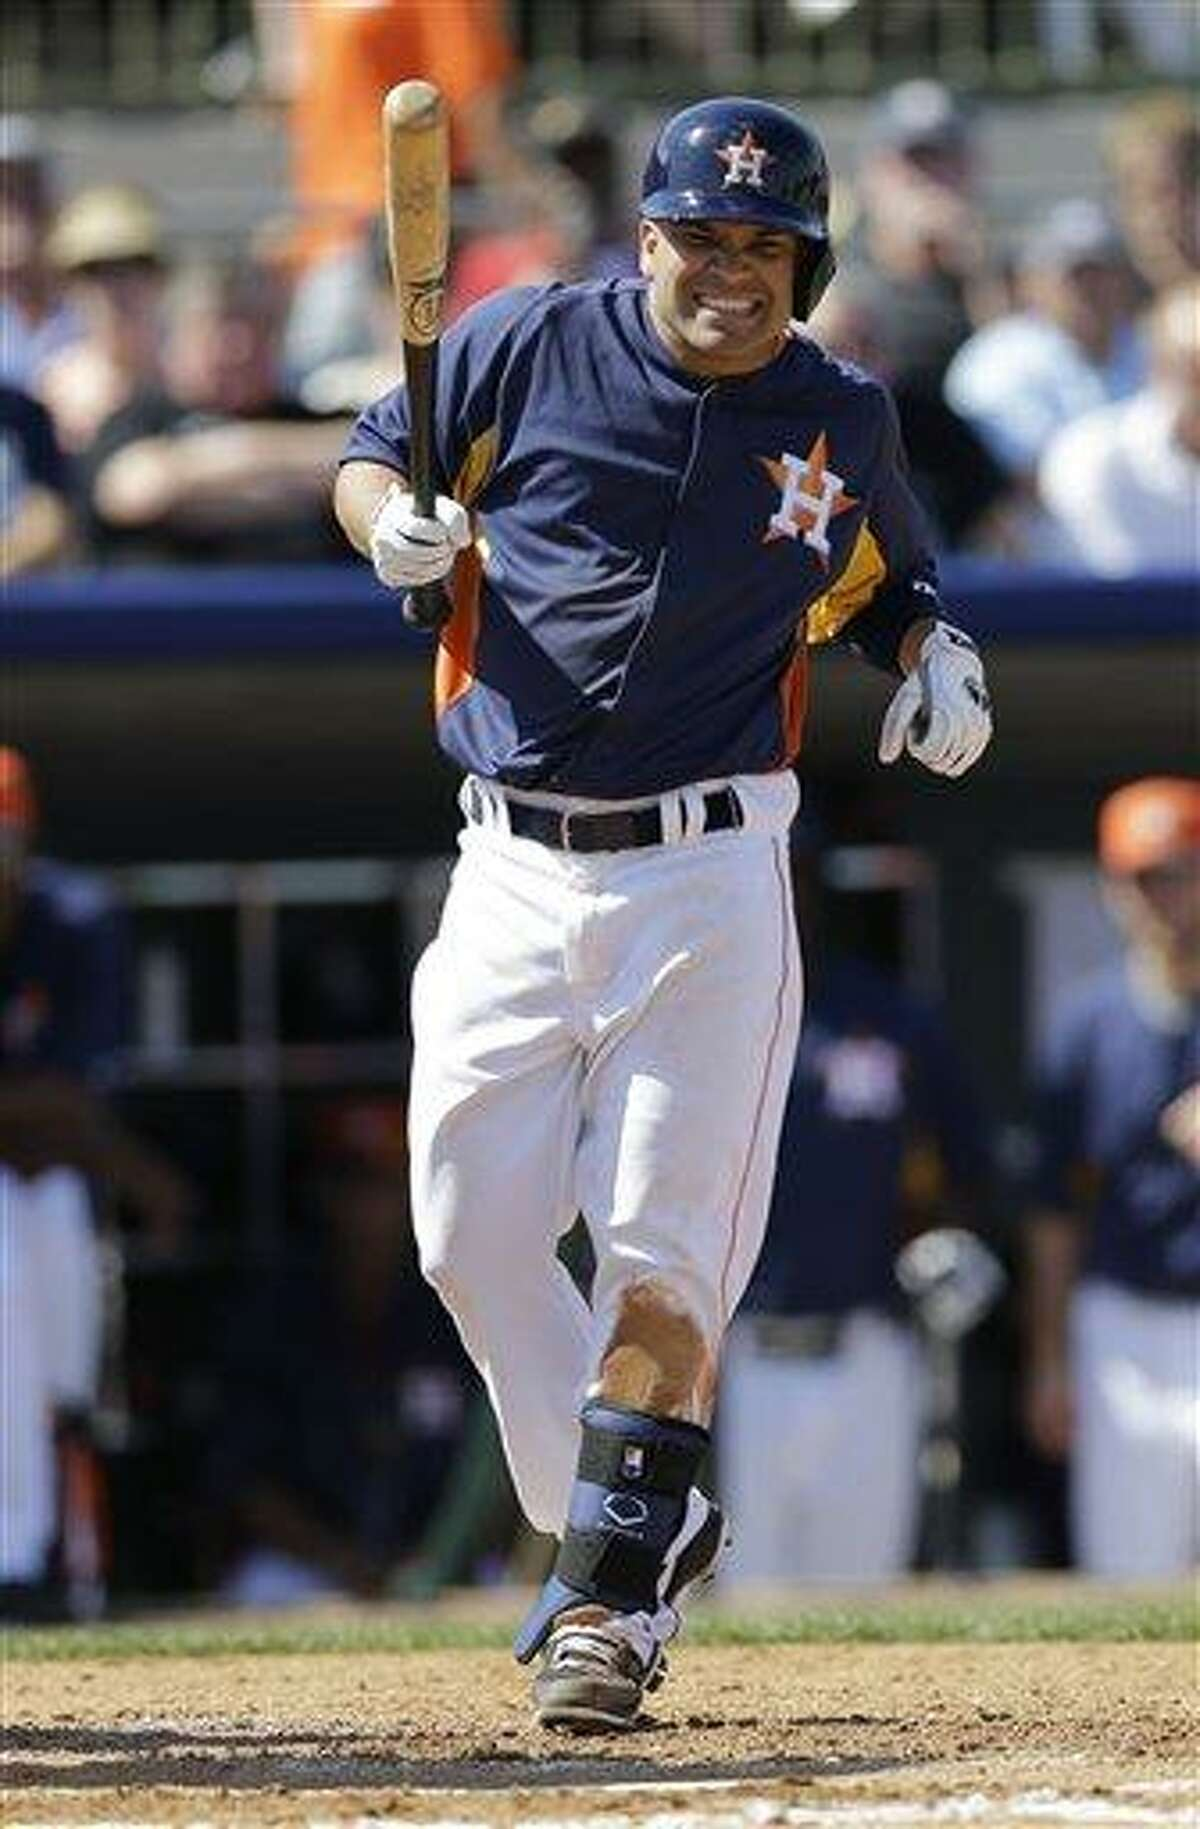 Houston Astros' Jose Altuve reacts after being hit by a pitch during the fourth inning of an exhibition spring training baseball game against the New York Yankees Thursday, Feb. 28, 2013, in Kissimmee, Fla. (AP Photo/David J. Phillip)